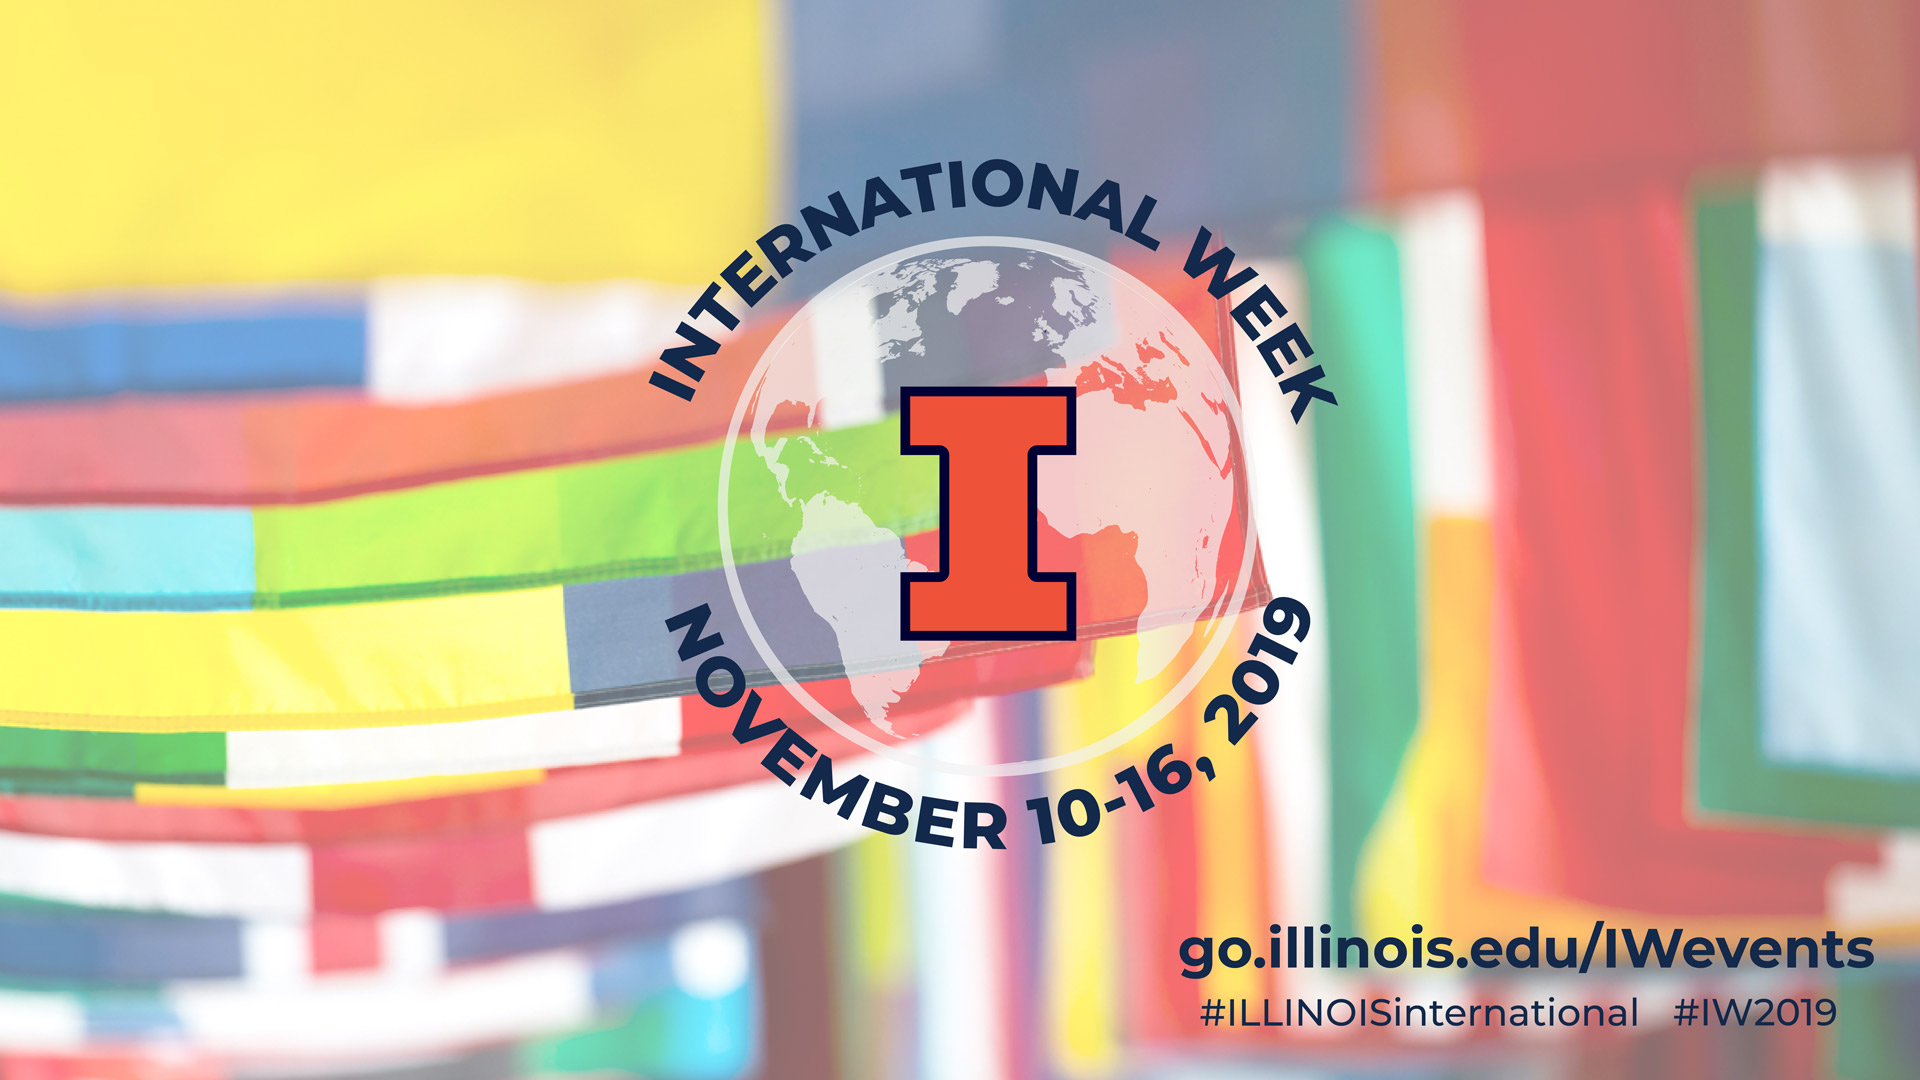 Illini I infront of globe outline with text: International Week November 10-16, 2019